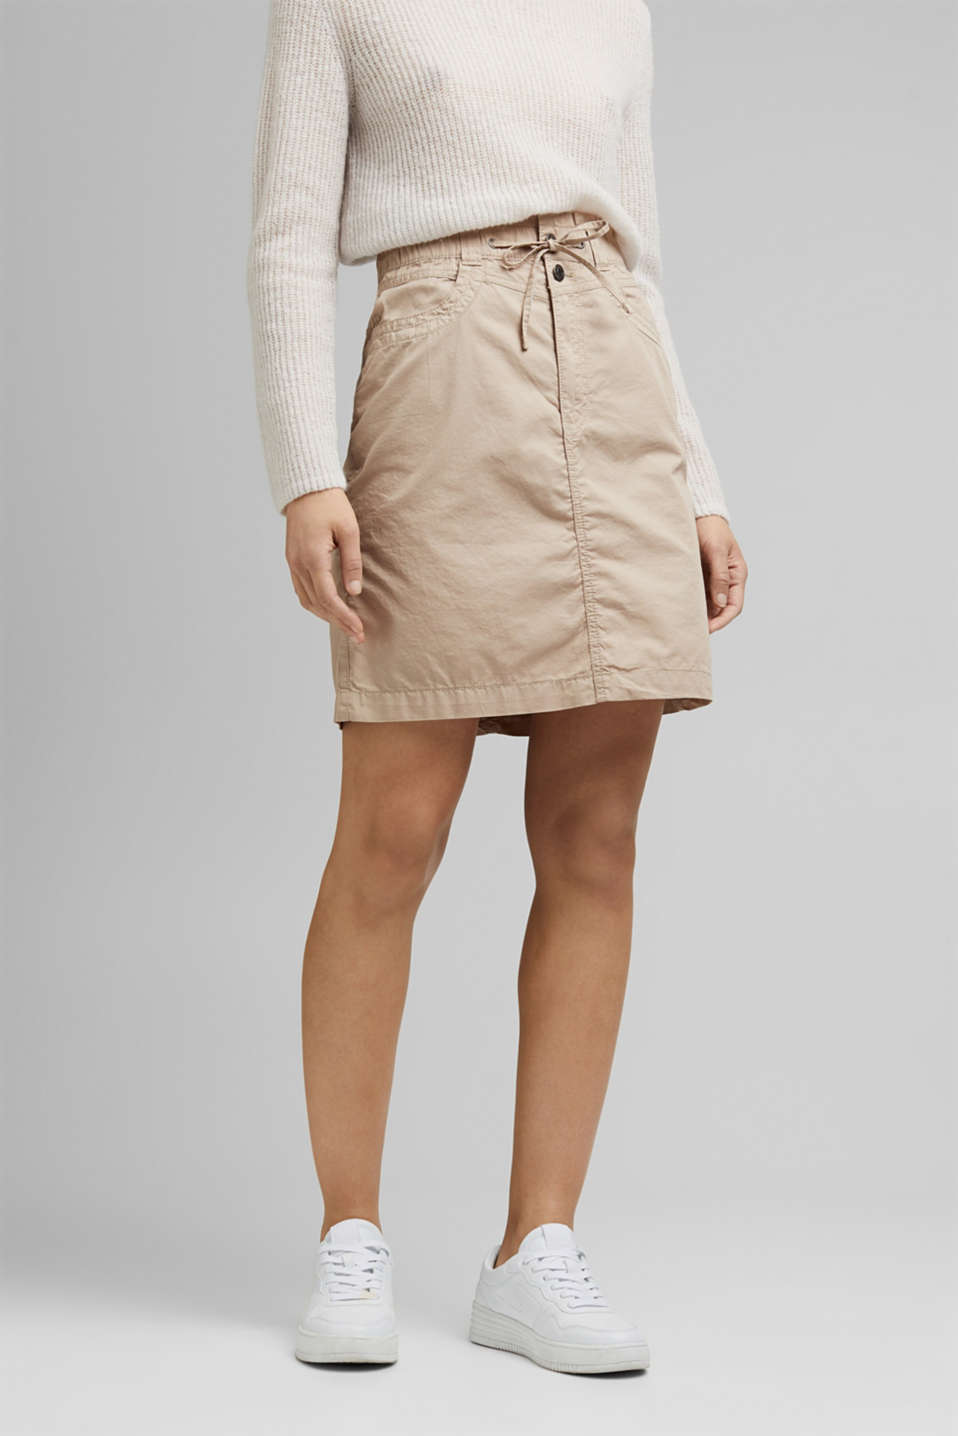 Esprit - PLAY mini skirt made of 100% organic cotton